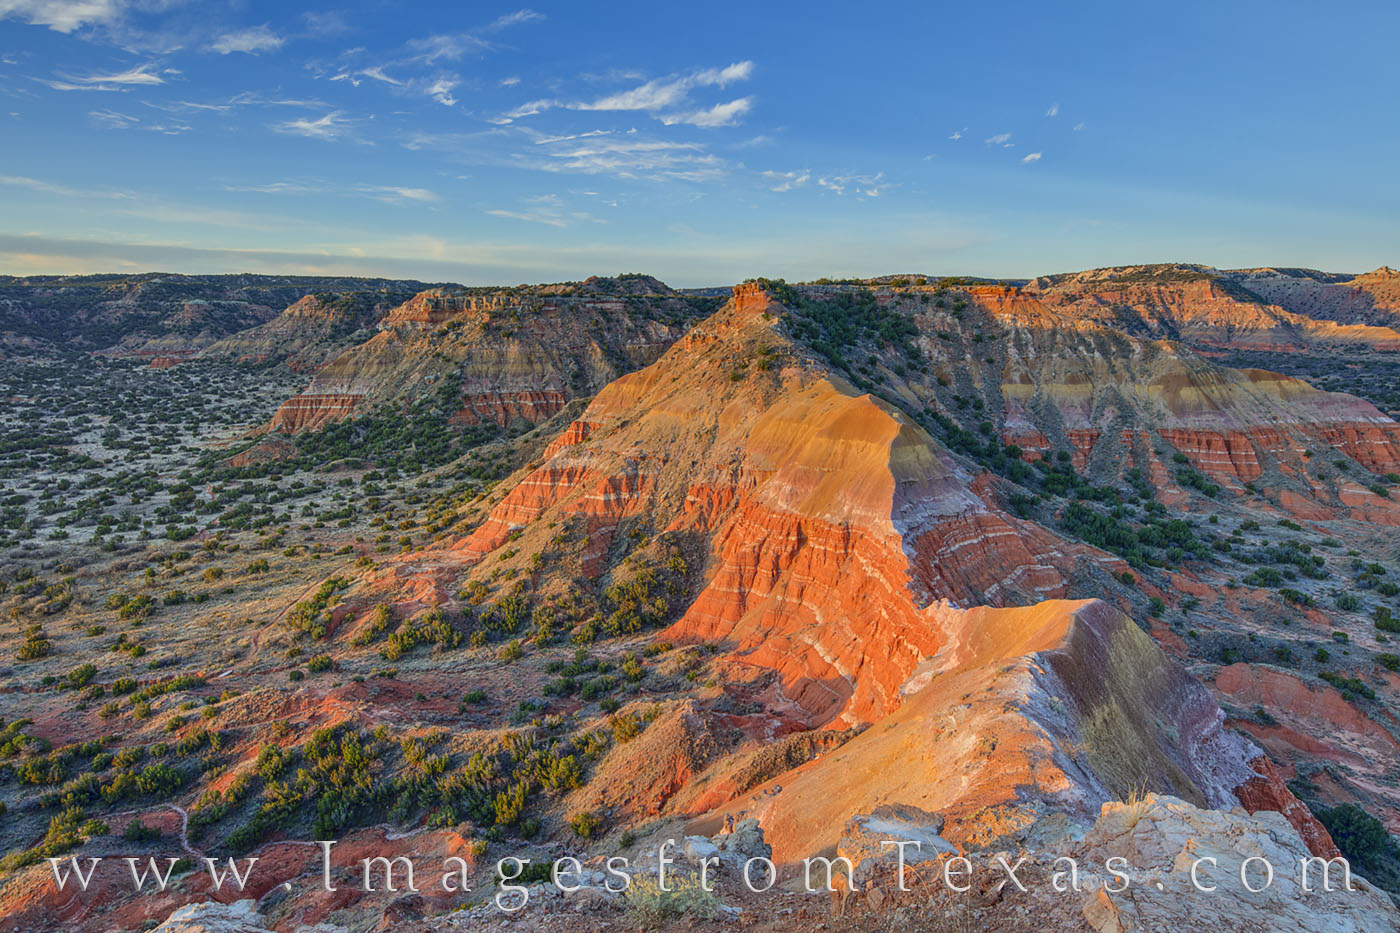 On a 30-degree morning in Palo Duro Canyon, the landscapae begins to show its orange rock as sunlight spreads across sandstone...